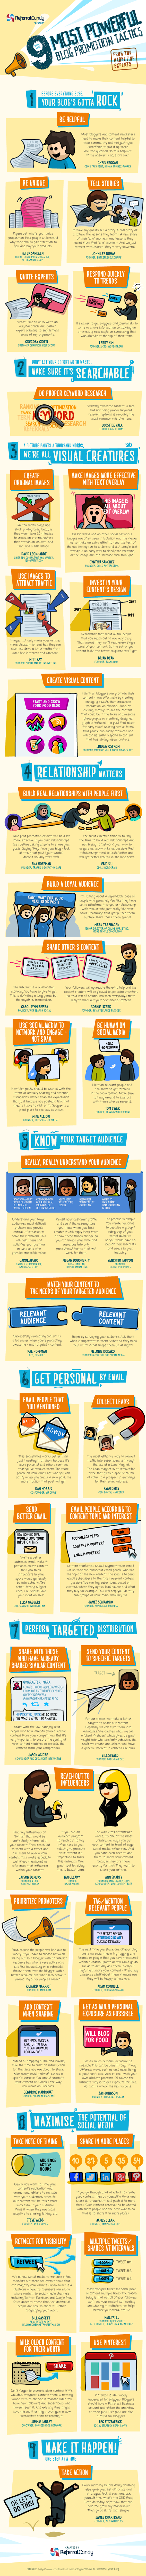 Ways to Promote Your Blog Posts [Infographic] by hubspot